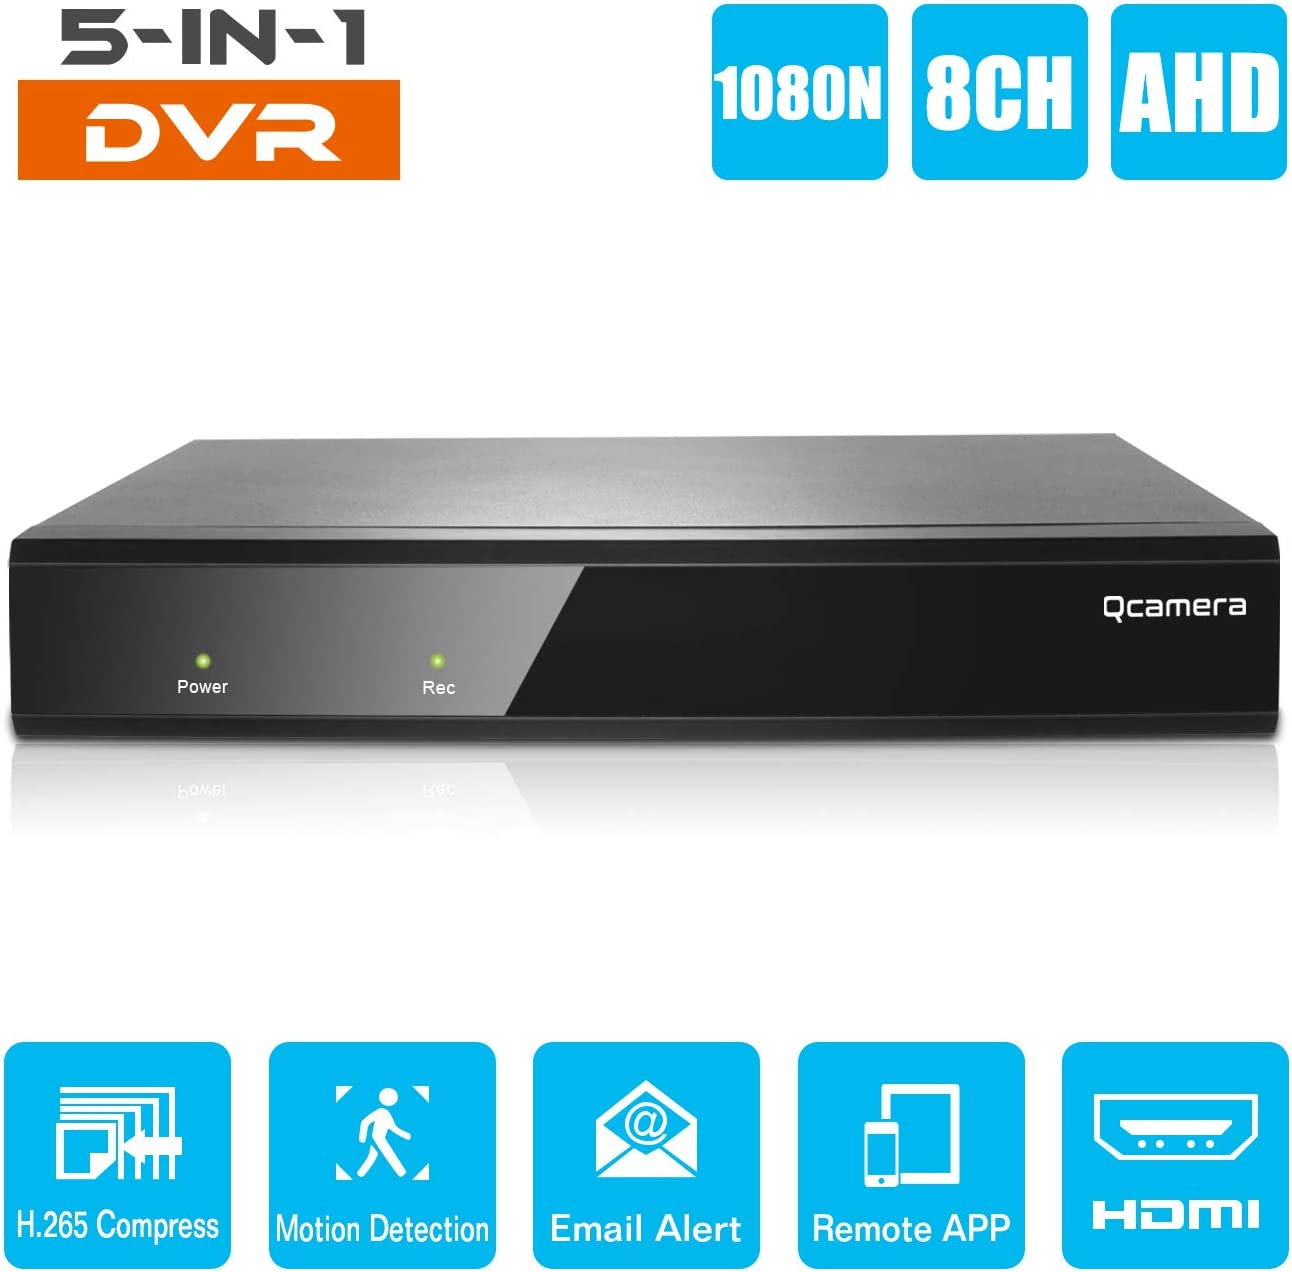 Q-camera 8CH 5M-N 1080N Full High Definition Hybrid AHD TVI CVI Analog Onvif IP DVR H.265 CCTV Video Recorder P2P Remote Phone Monitoring for Home Security Surveillance System Camera NO HDD